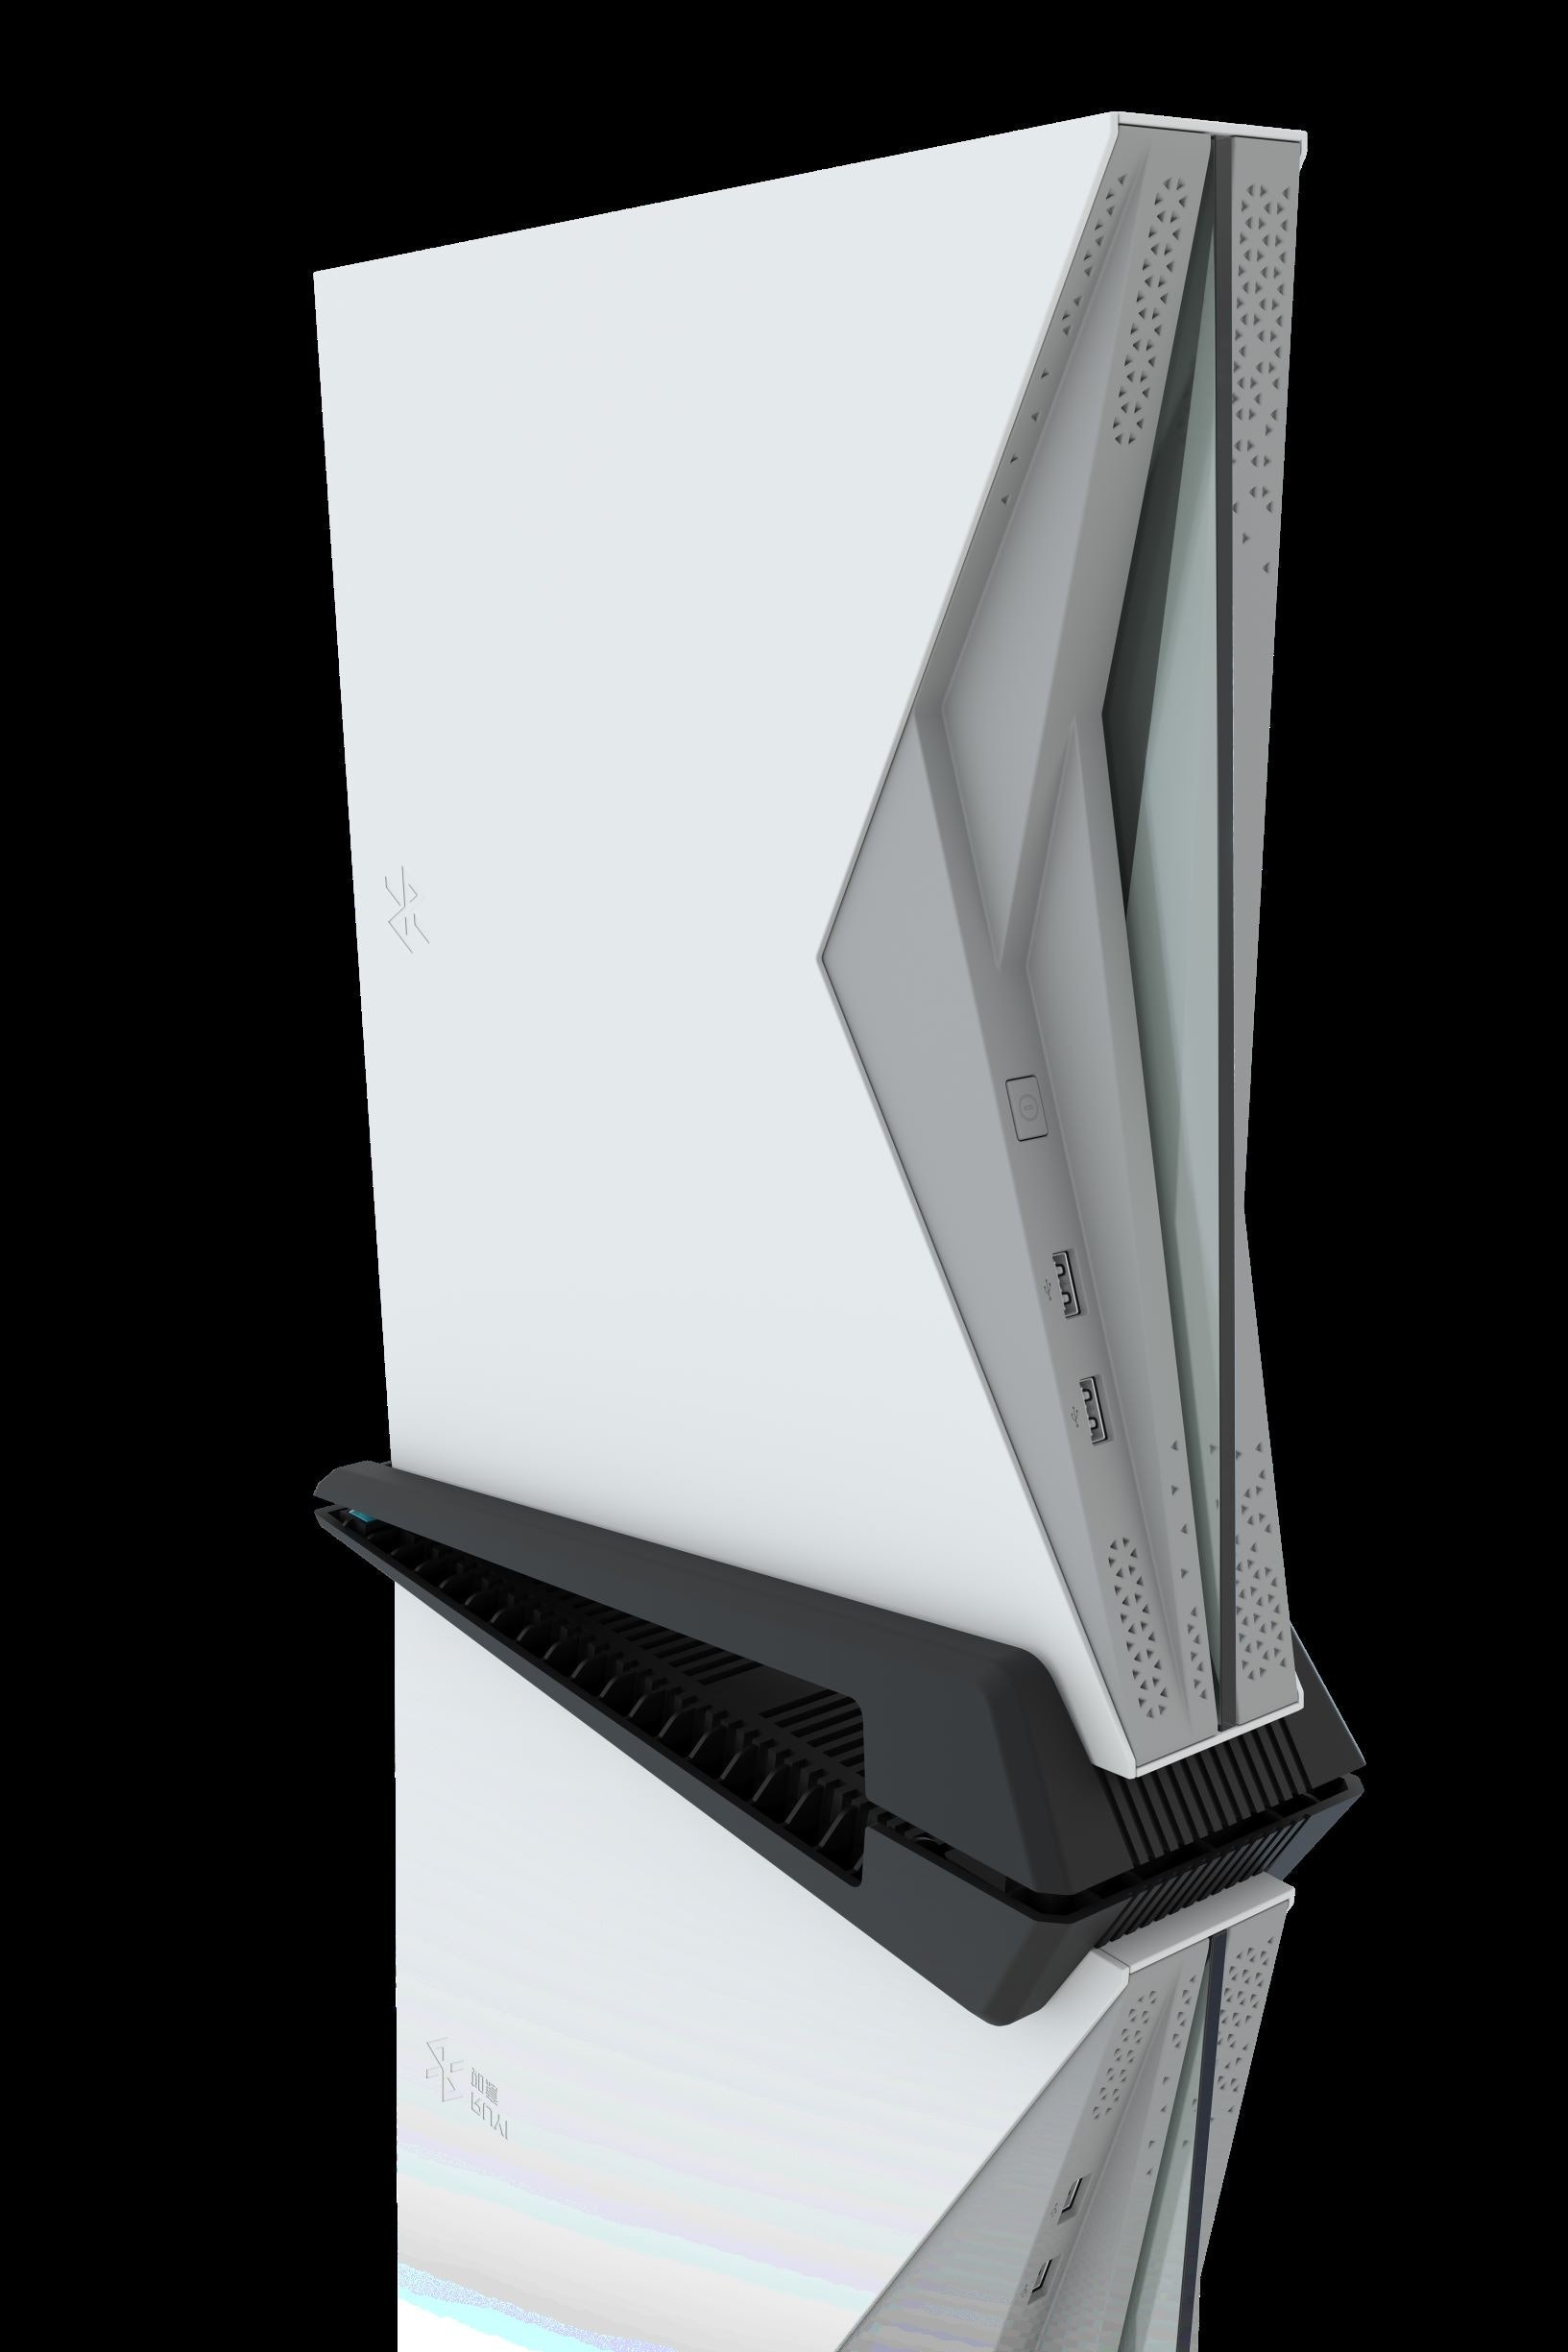 Video Games, Video Game Consoles, , Game, The Last of Us, Advanced Micro Devices, , Graphics processing unit, AMD Vega, GDDR5 SDRAM, Video game console, technology, display device, product, angle, multimedia, electronic device, screen